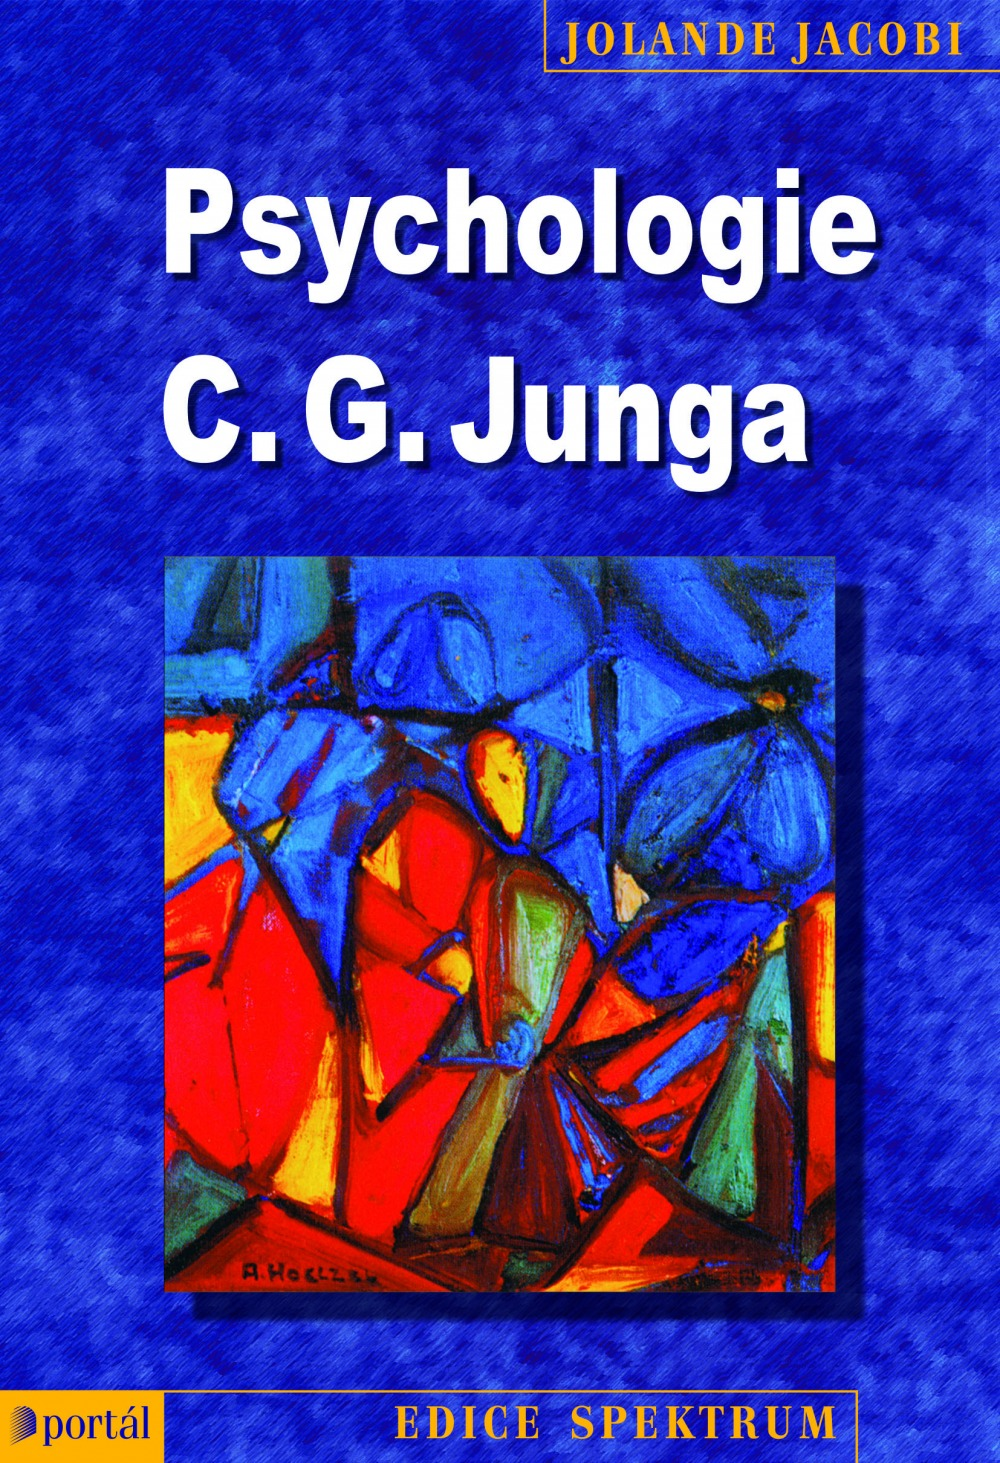 Big-psychologie-c-g-junga-ohq-152837